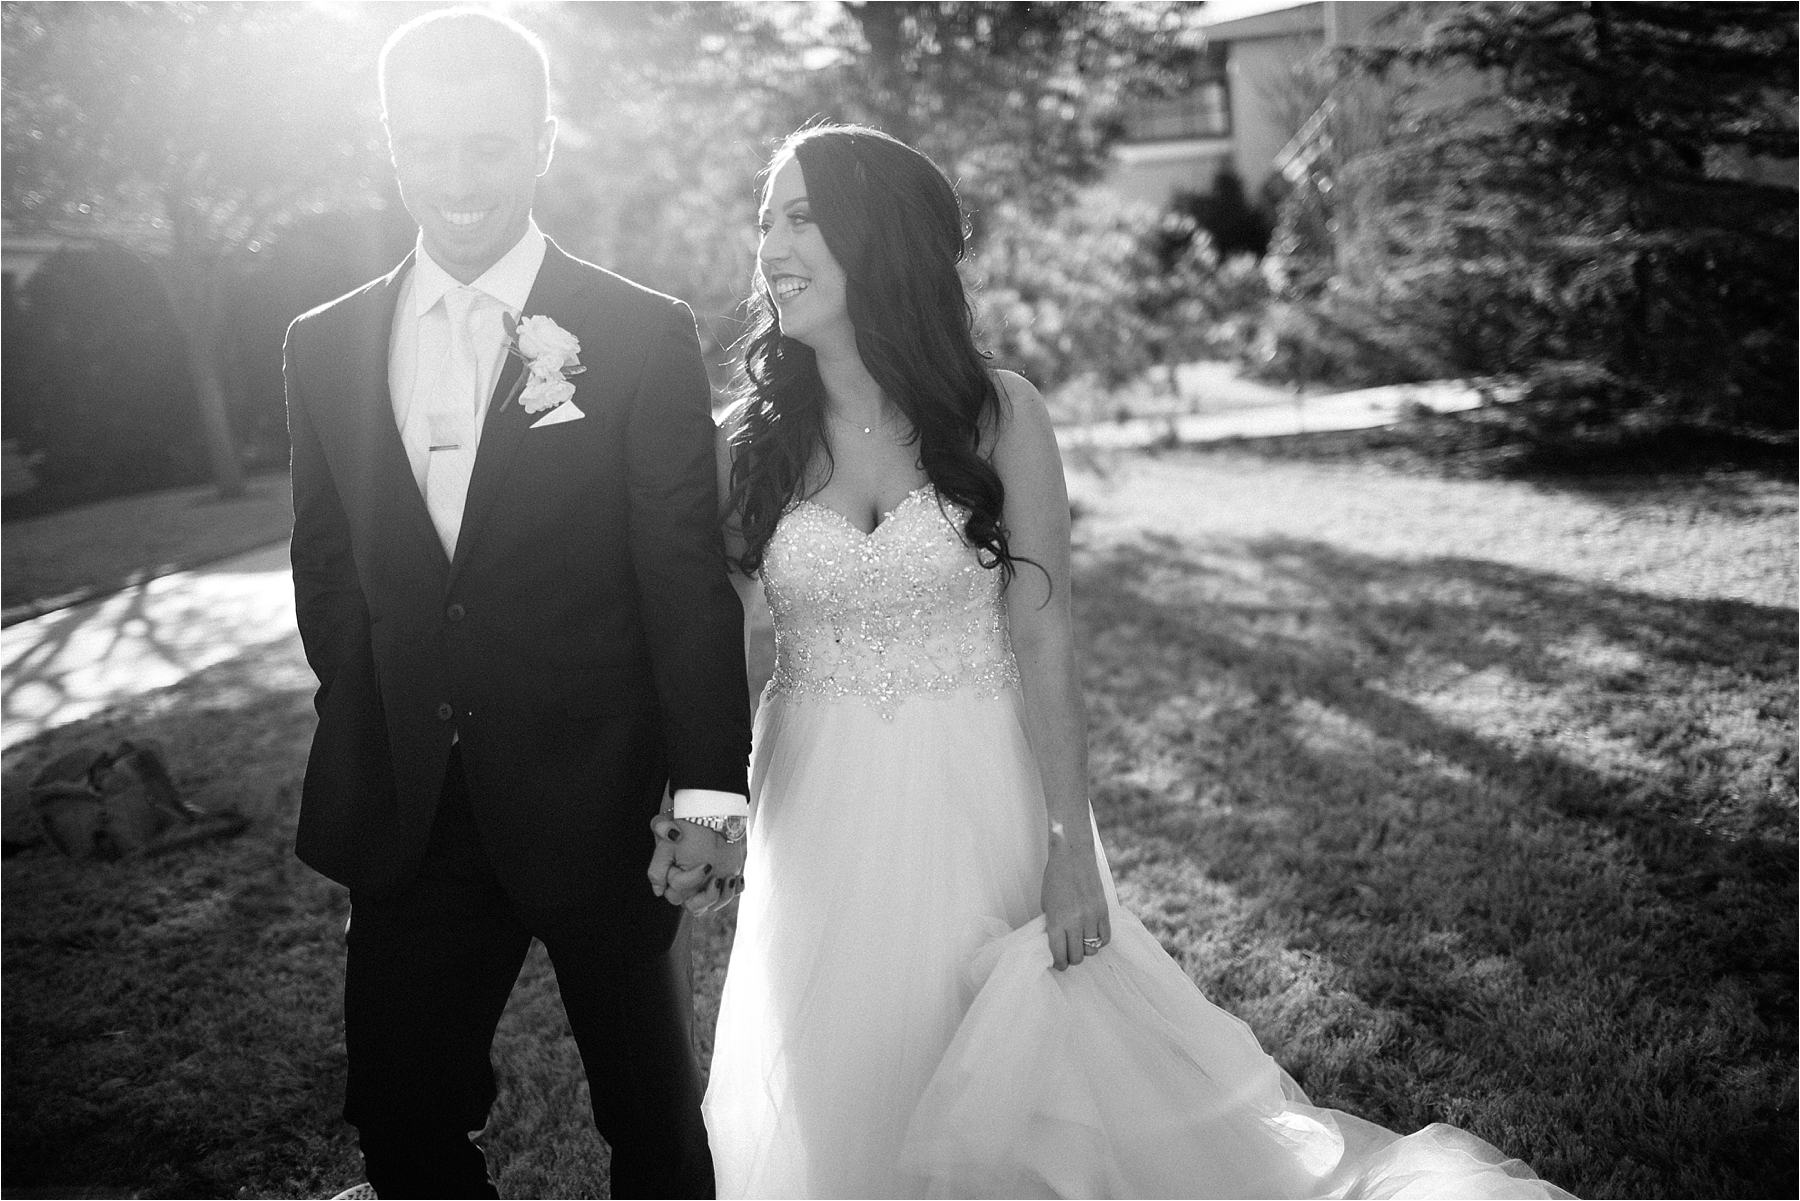 Chrissy + Zach __ The Windsor at Hebron Park Wedding by North Texas Wedding Photographer _ Rachel Meagan Photography __050